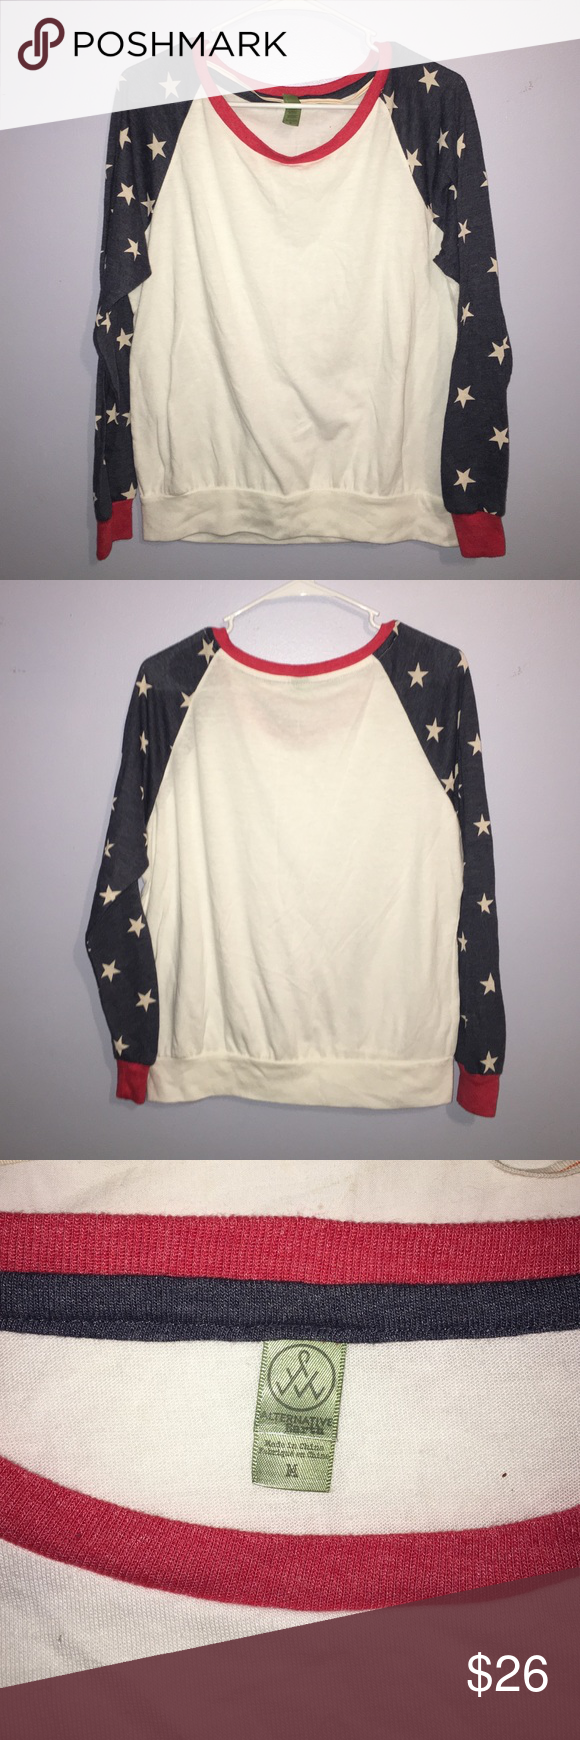 American flag shirt very soft cotton t from south moon under tops